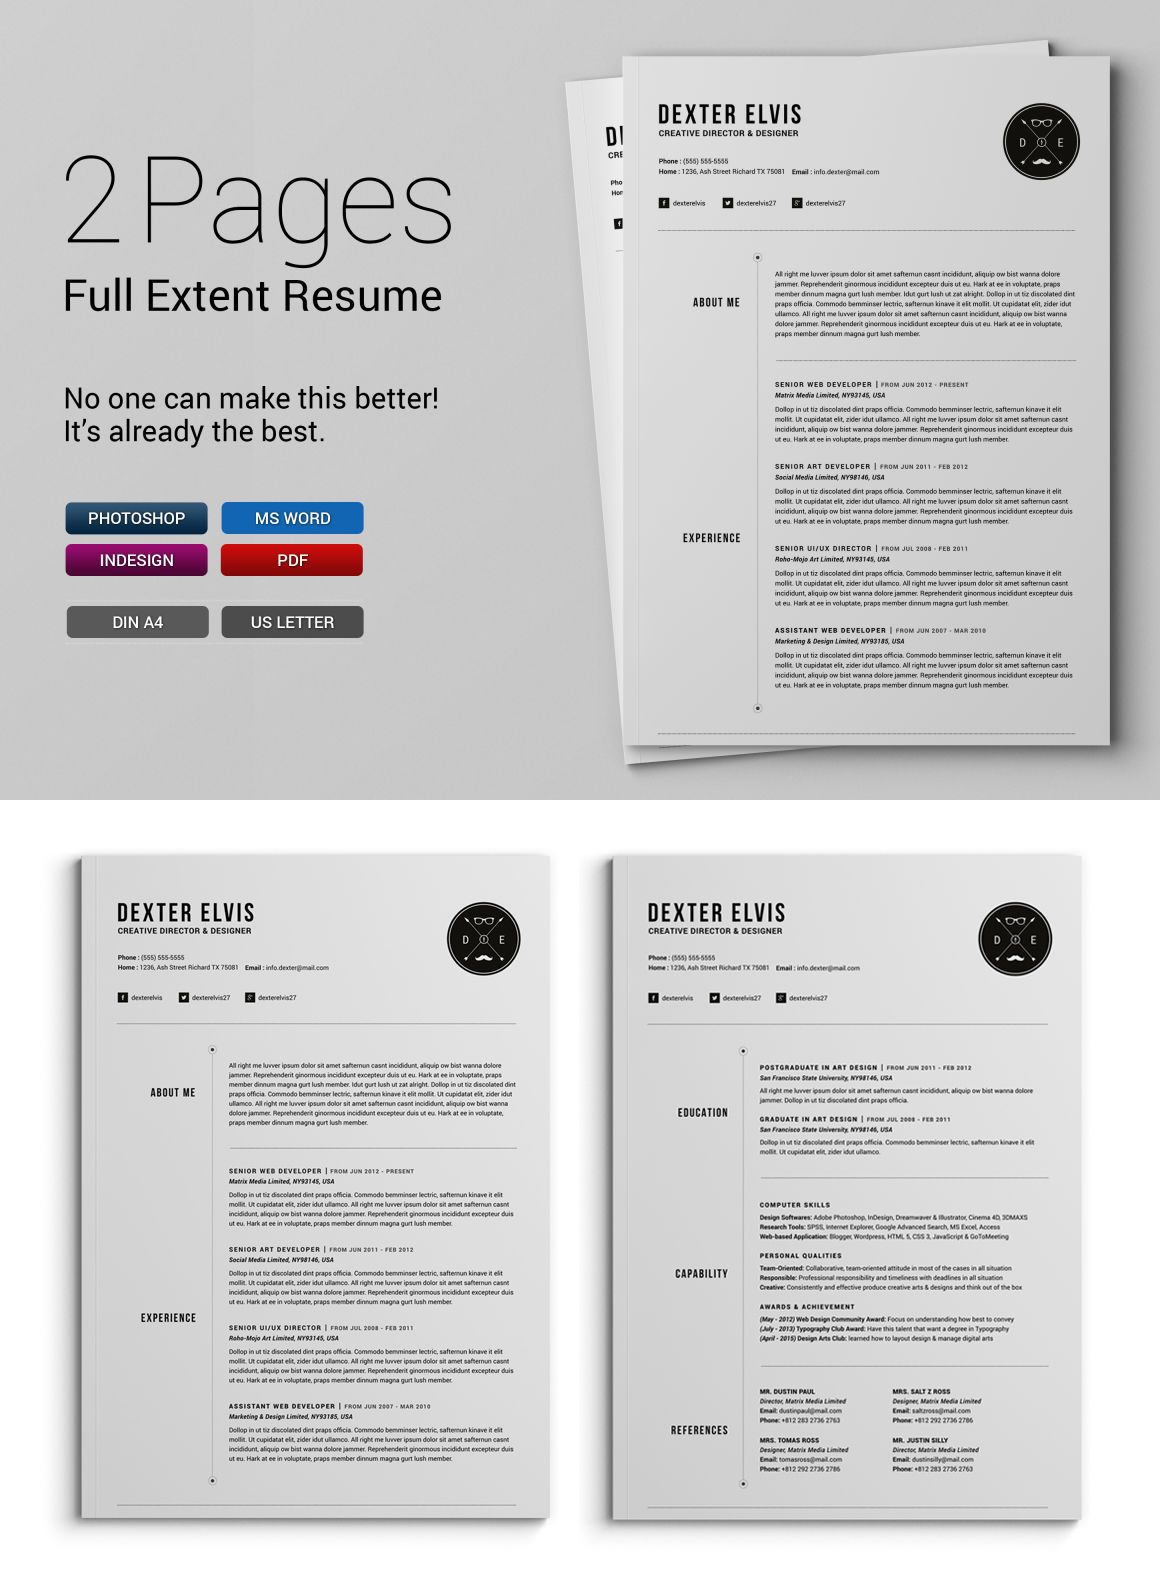 2 Pages Full Extent Resume Cv Template Indd Psd